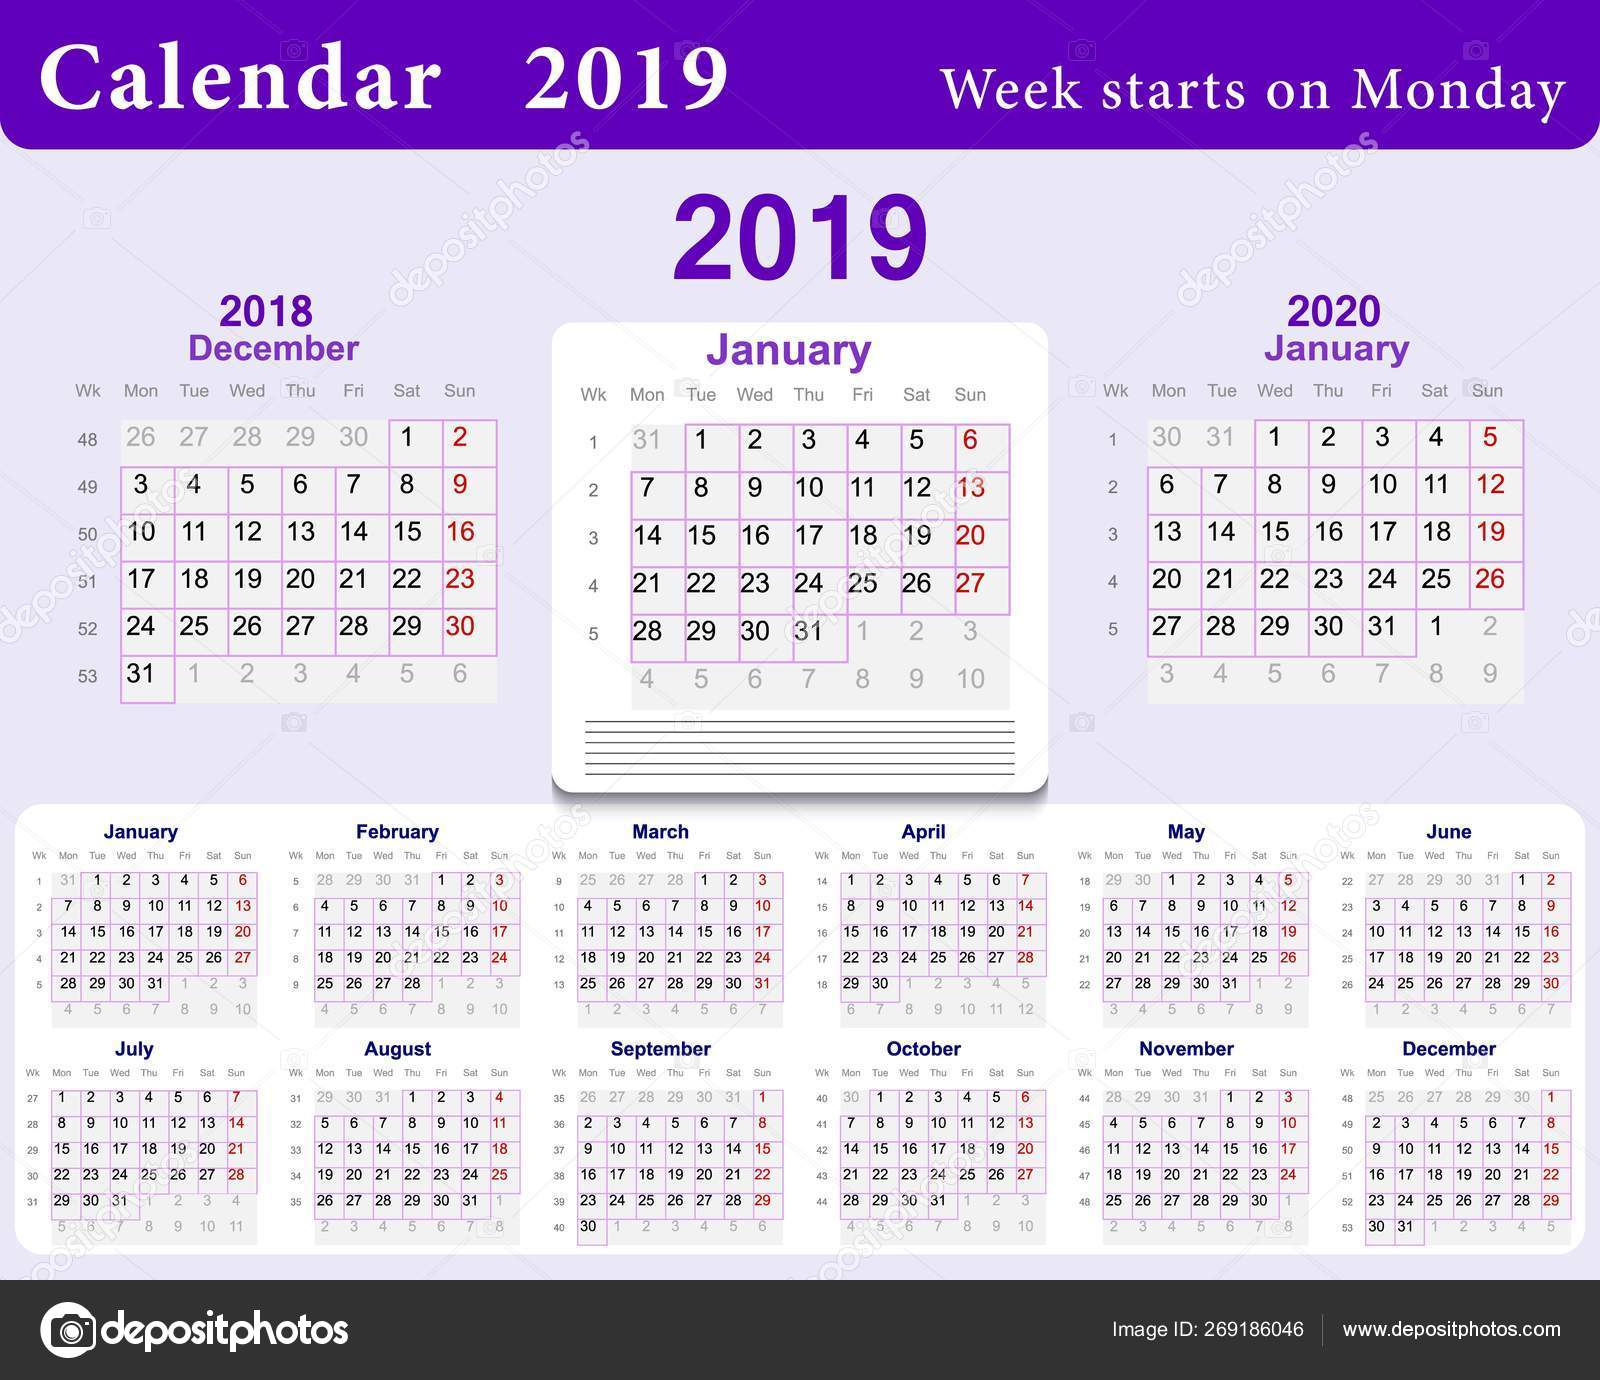 Calendar Grid For 2019 In English Language. Wall Template In